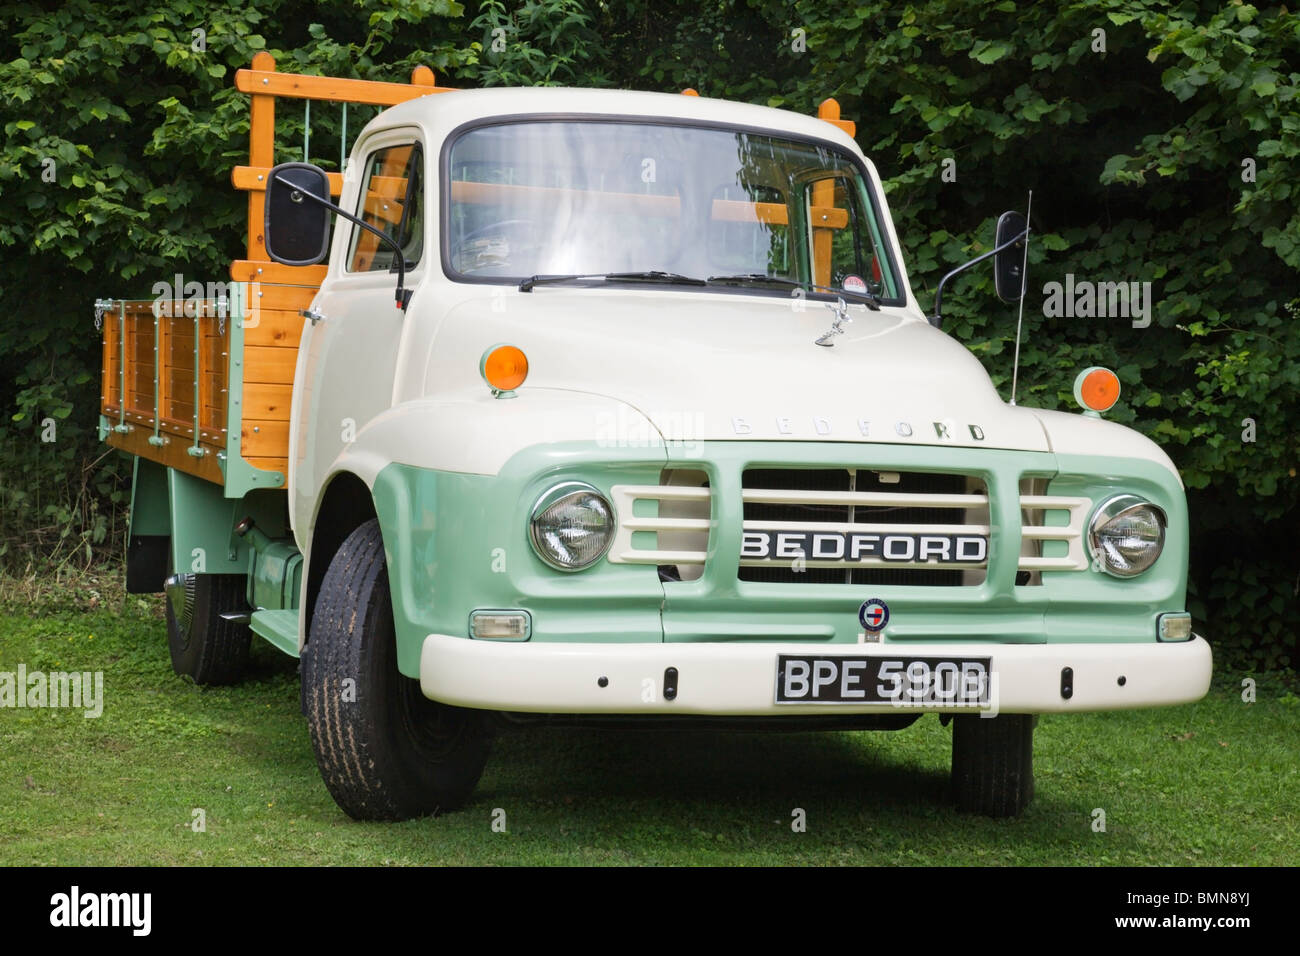 An old vintage Bedford truck. - Stock Image